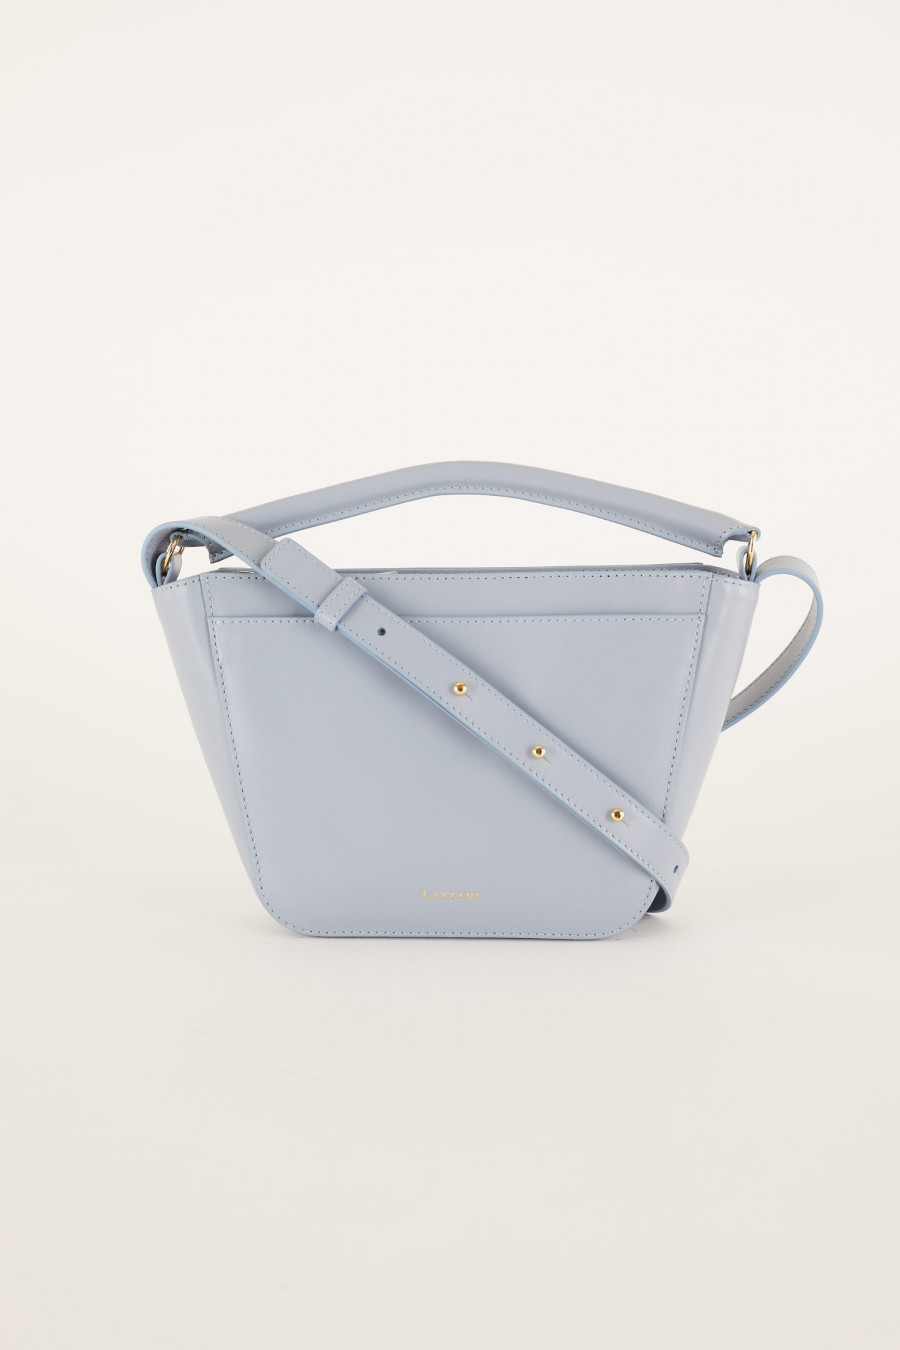 powder blue trapeze bag made in italy